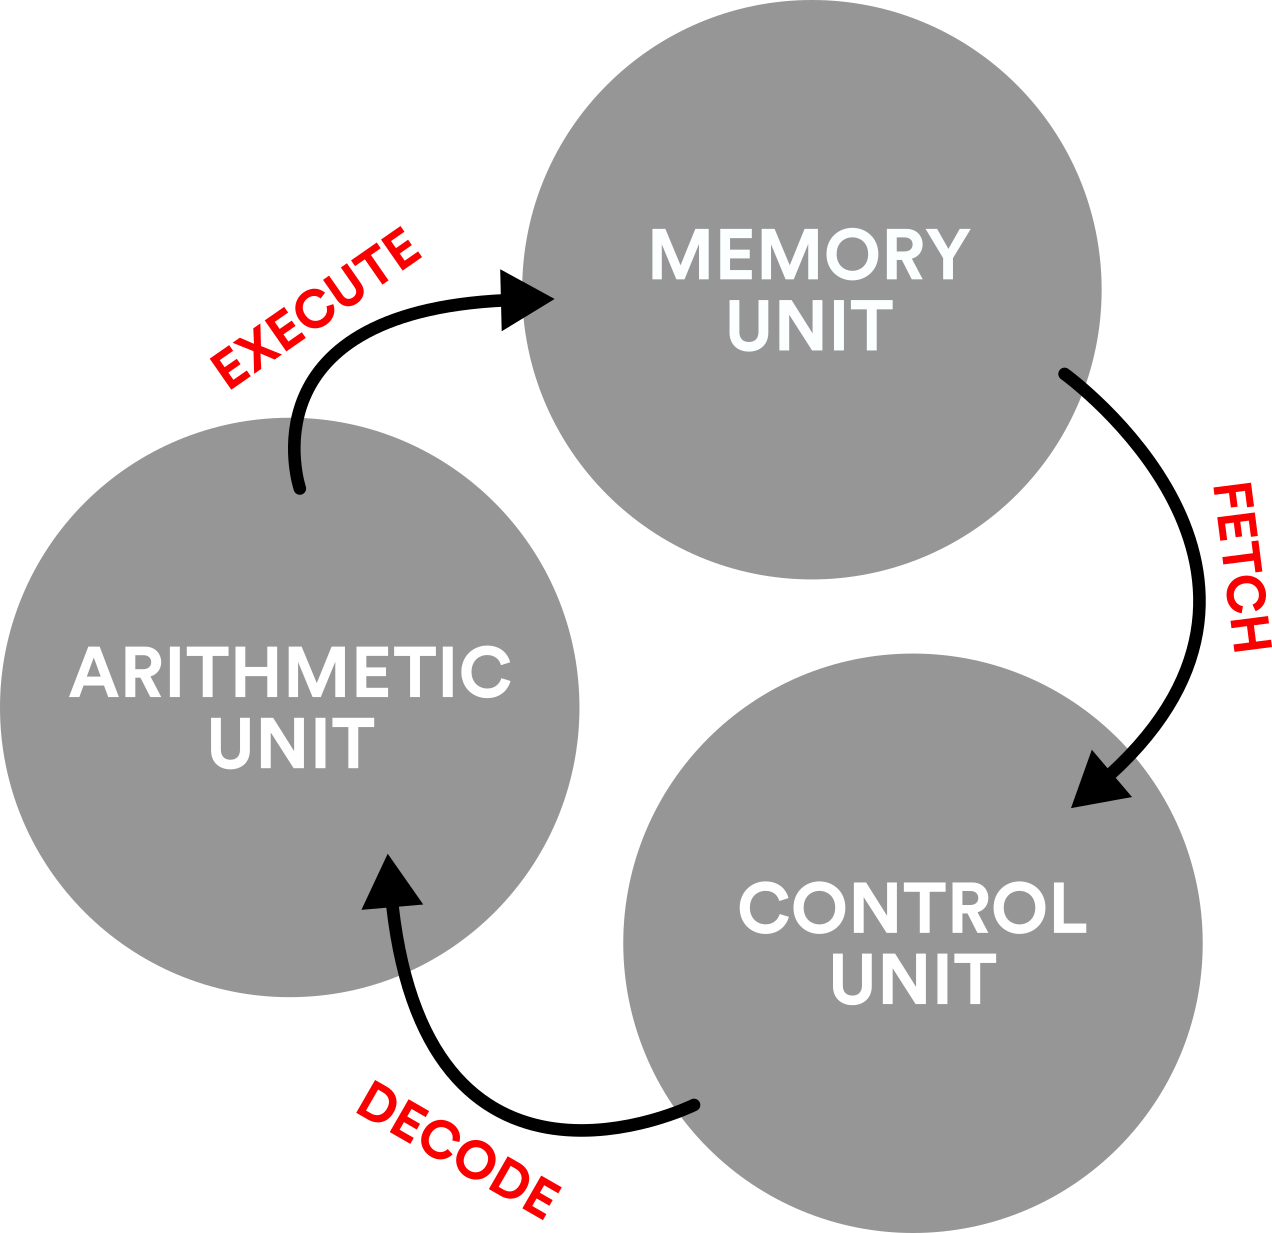 An illustration of the fetch-decode-execute cycle